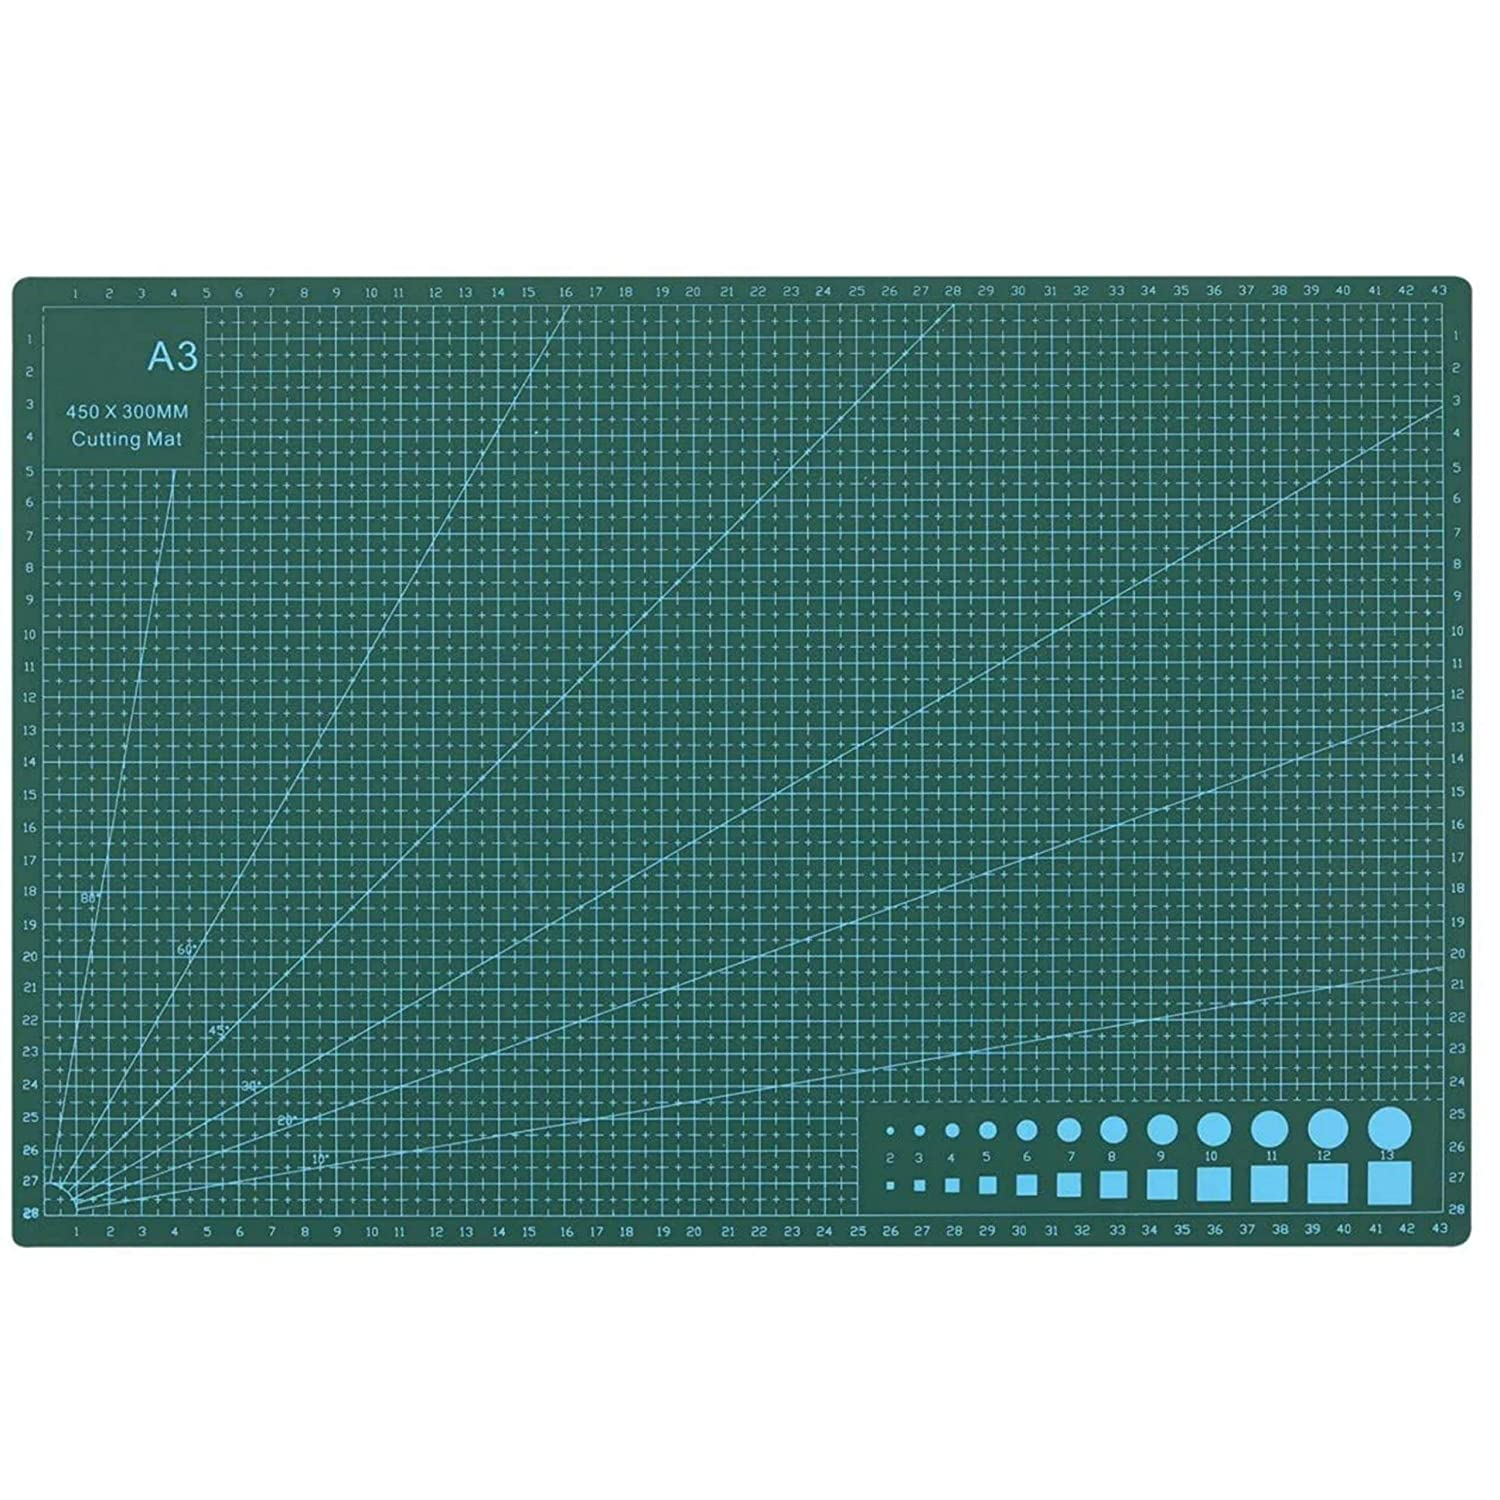 JD9 Professional Self-Healing 5 Layered Double Sided Durable Non-Slip PVC Cutting Mat -A3(Green, 17 x 11 Inch/ 43x 28 cm)